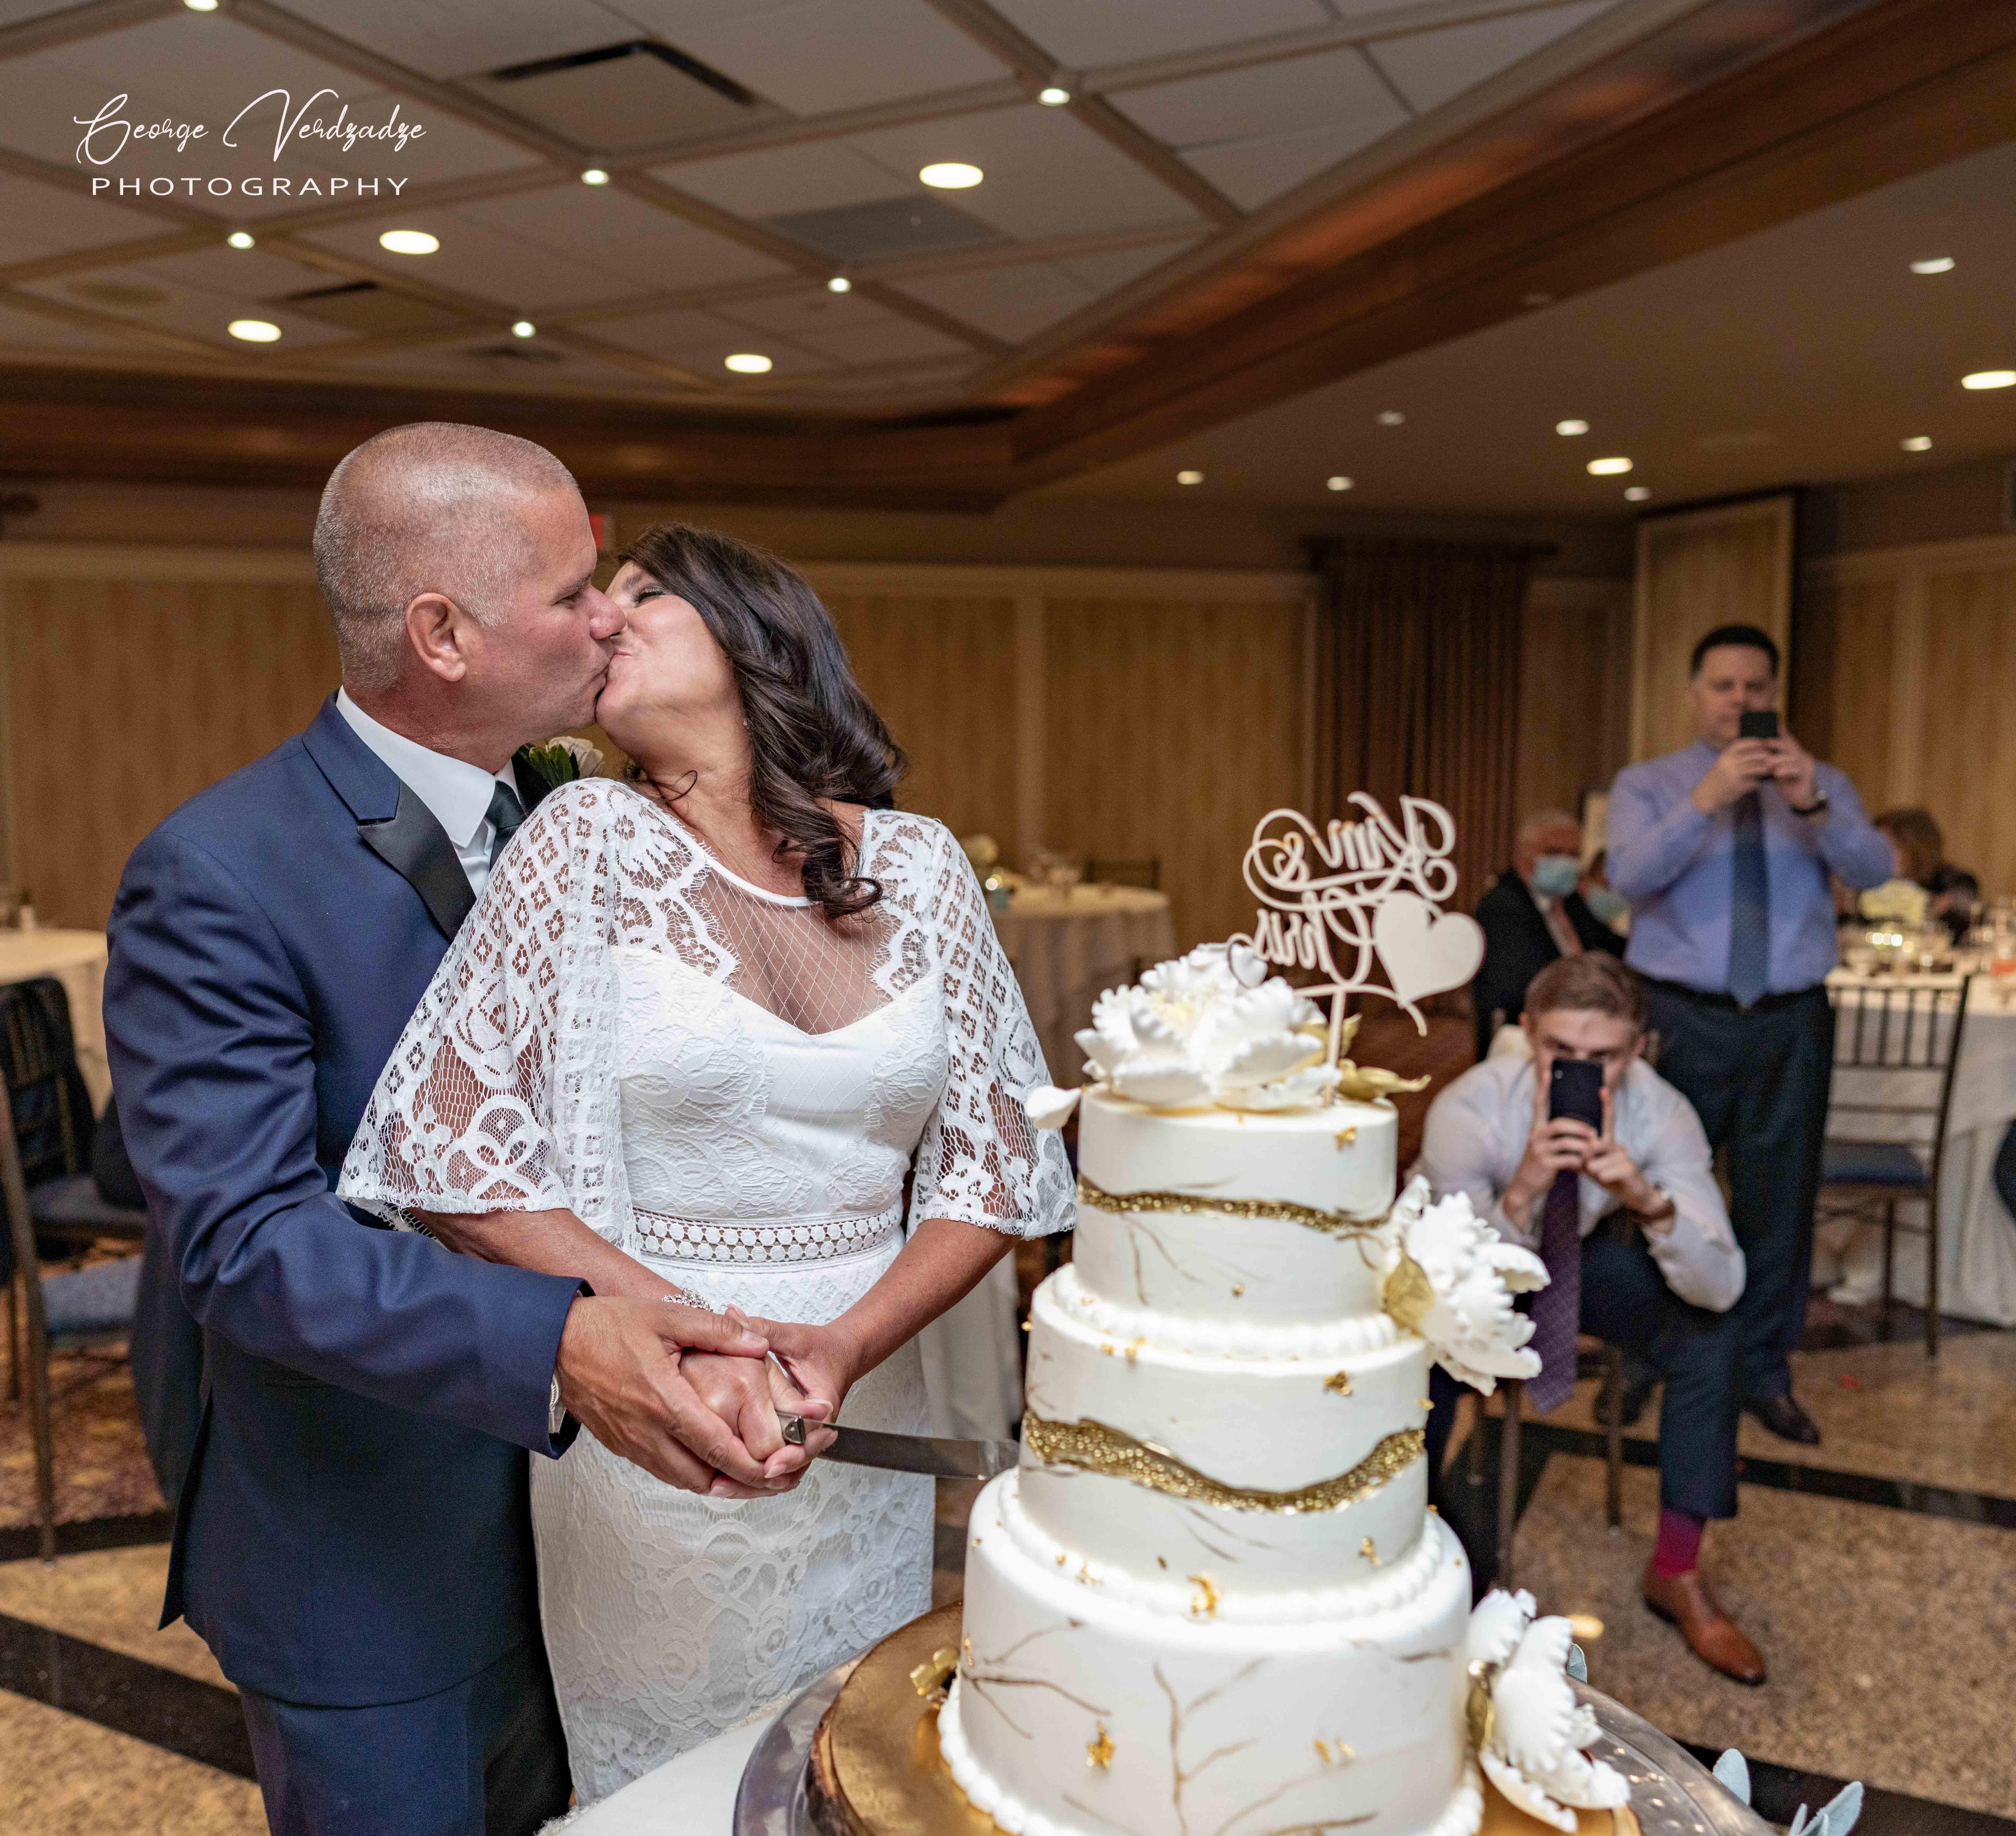 Indoor wedding photography in Darien, CT